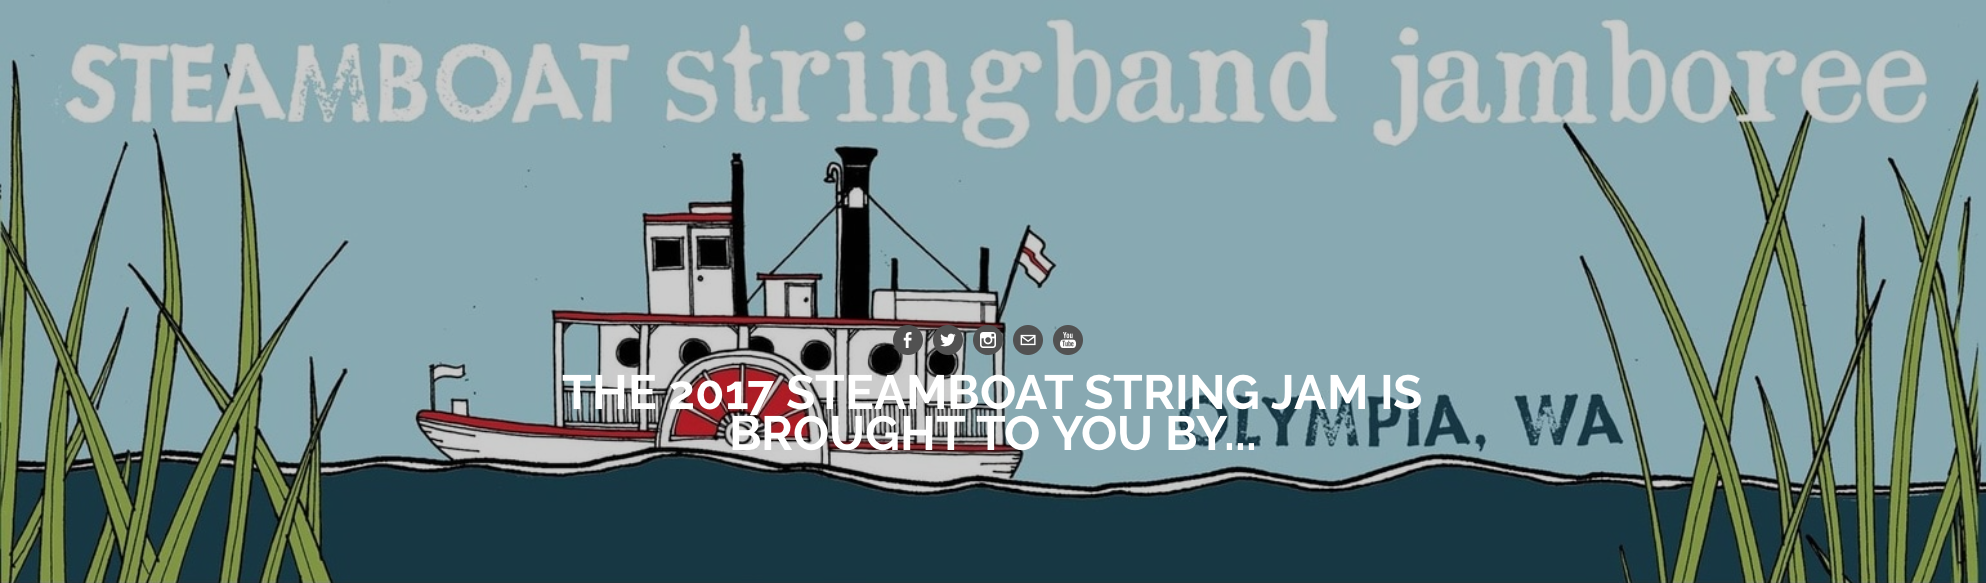 The Steamboat Stringband Jamboree